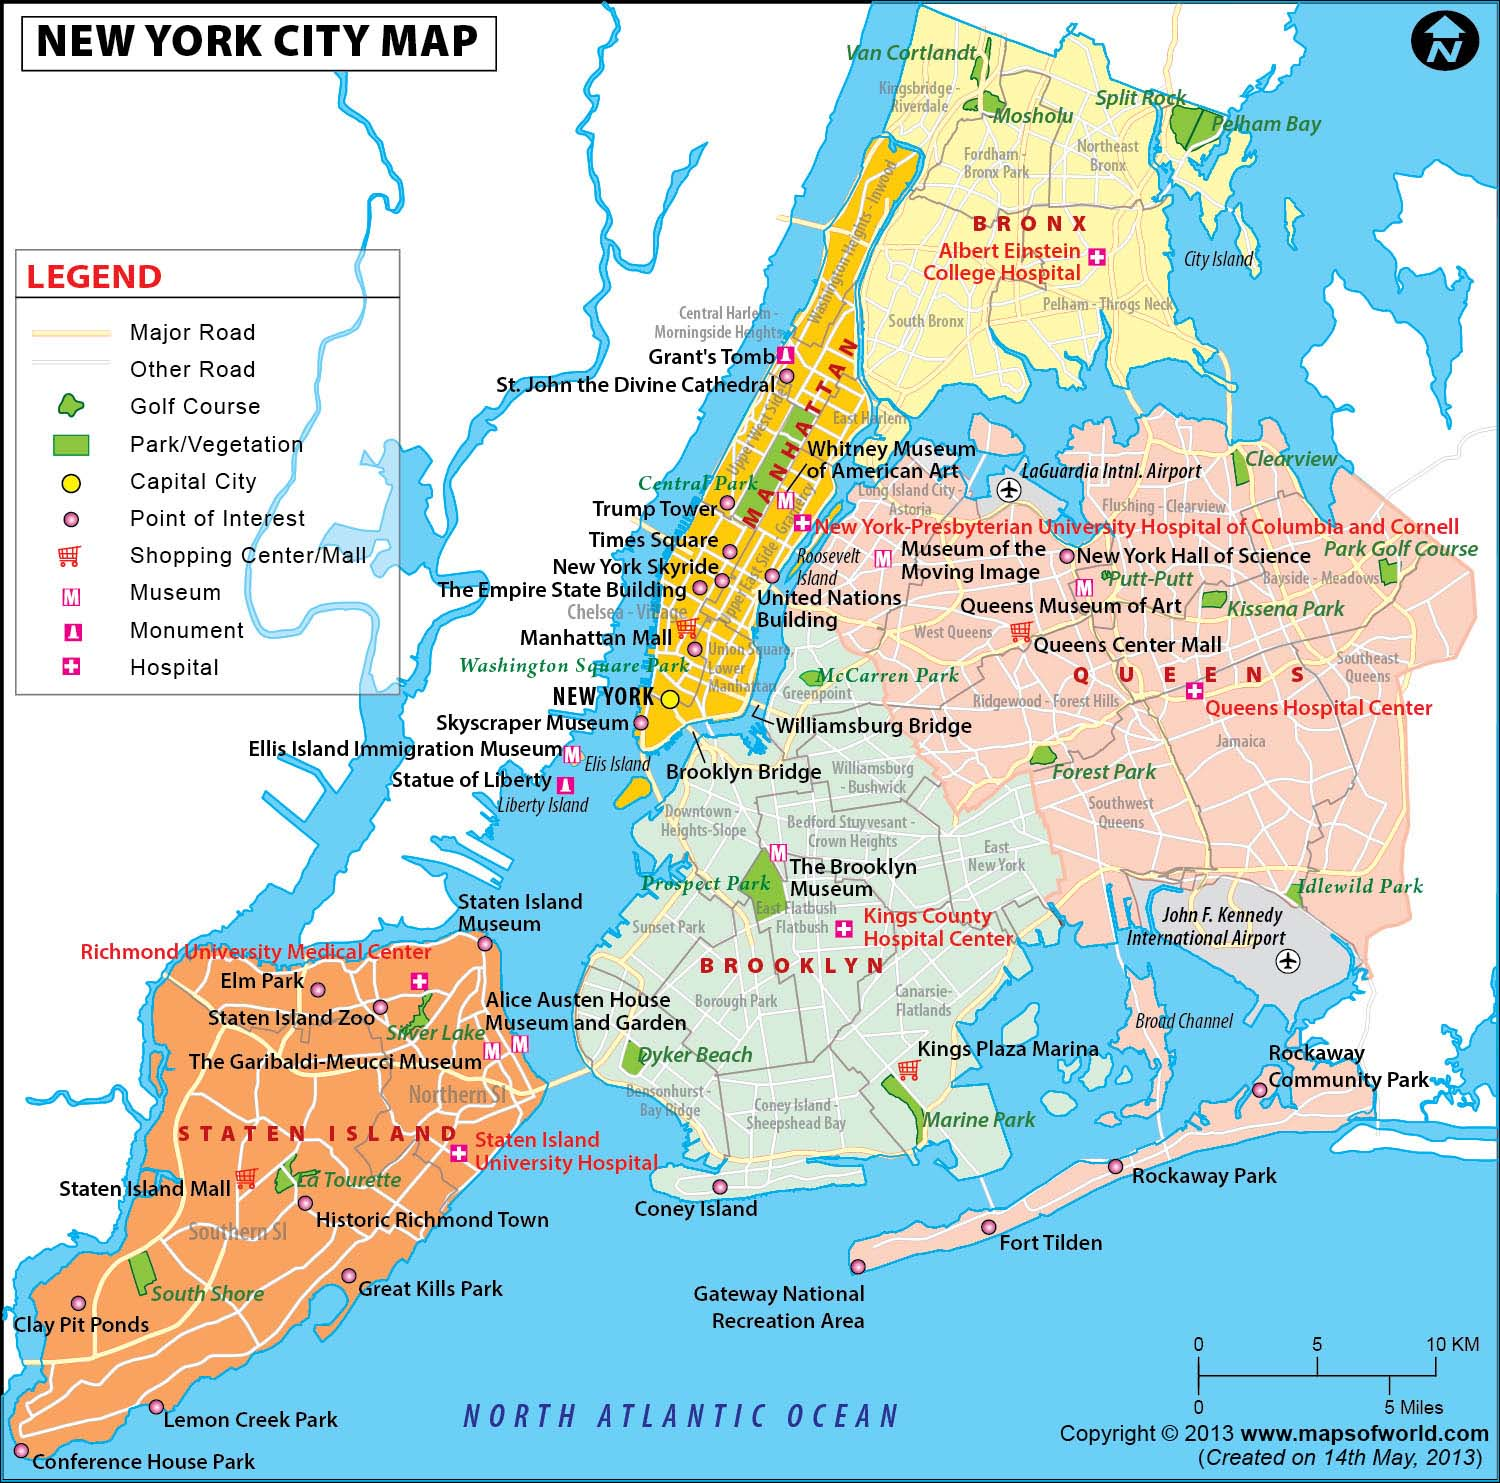 NYC Map New York City Map Map Of New York City - Nyc map of boroughs